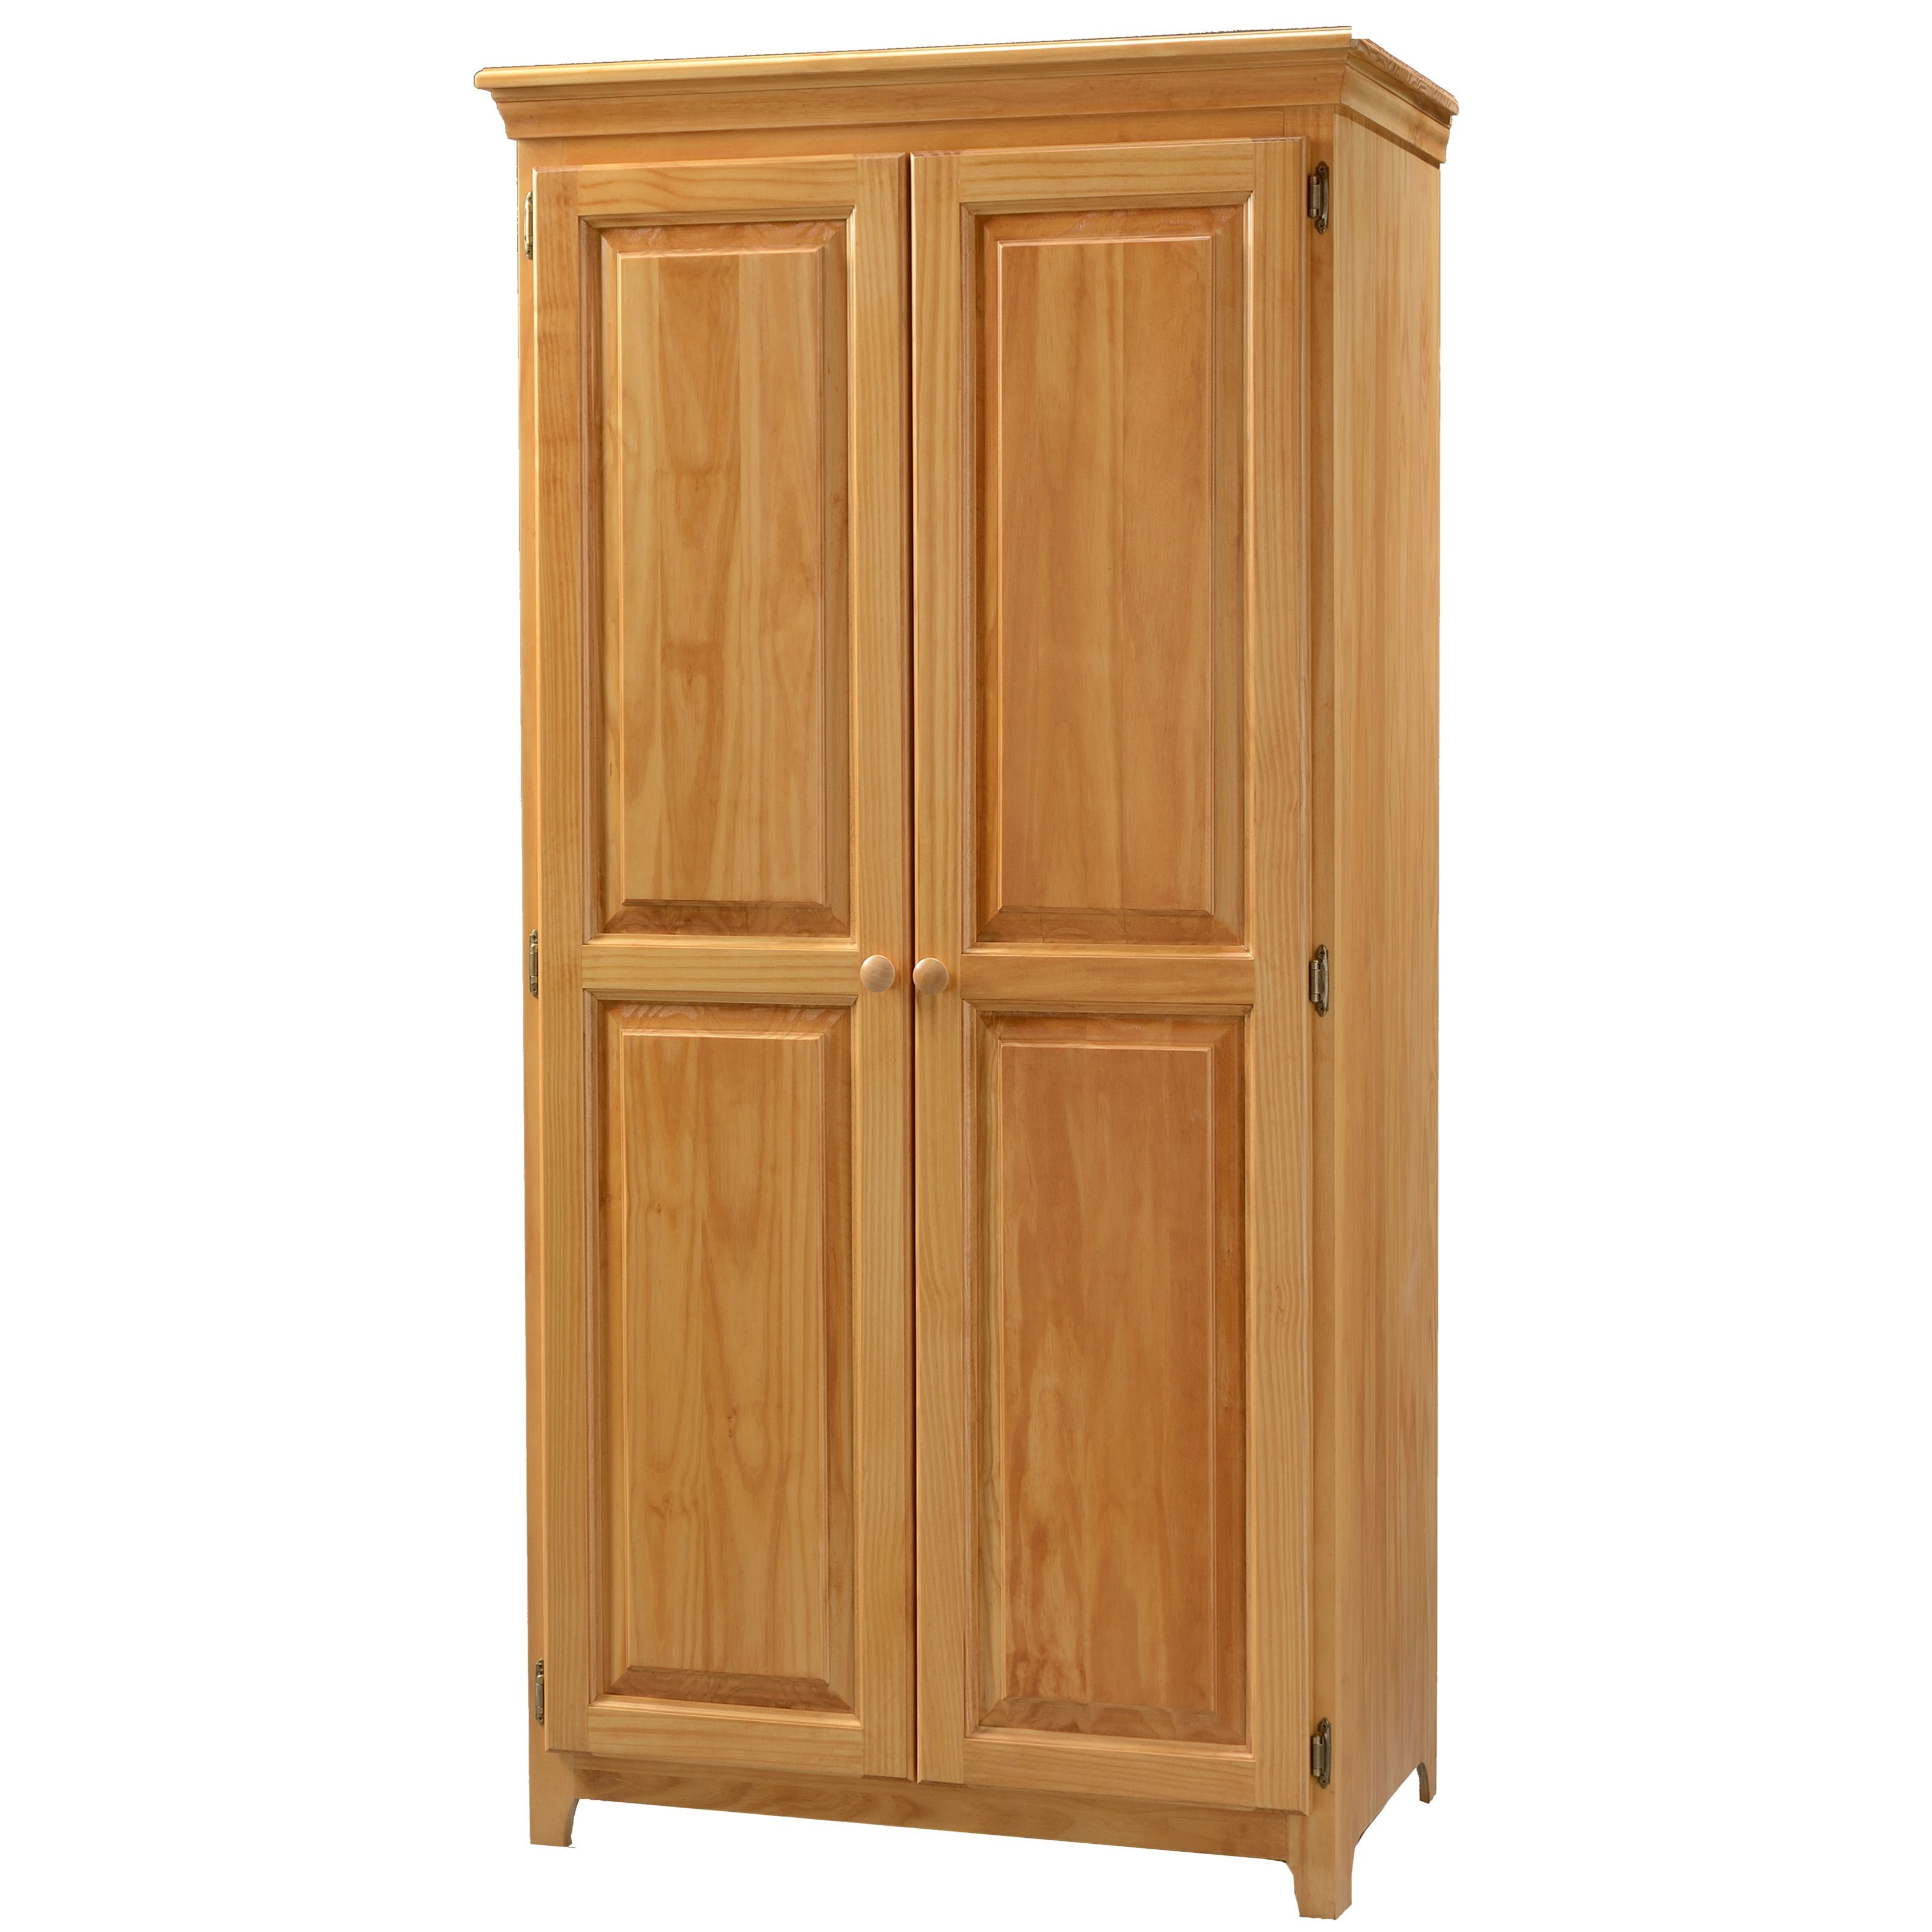 Archbold Furniture Pantries And Cabinets 73672 Pine 2 Door Pantry